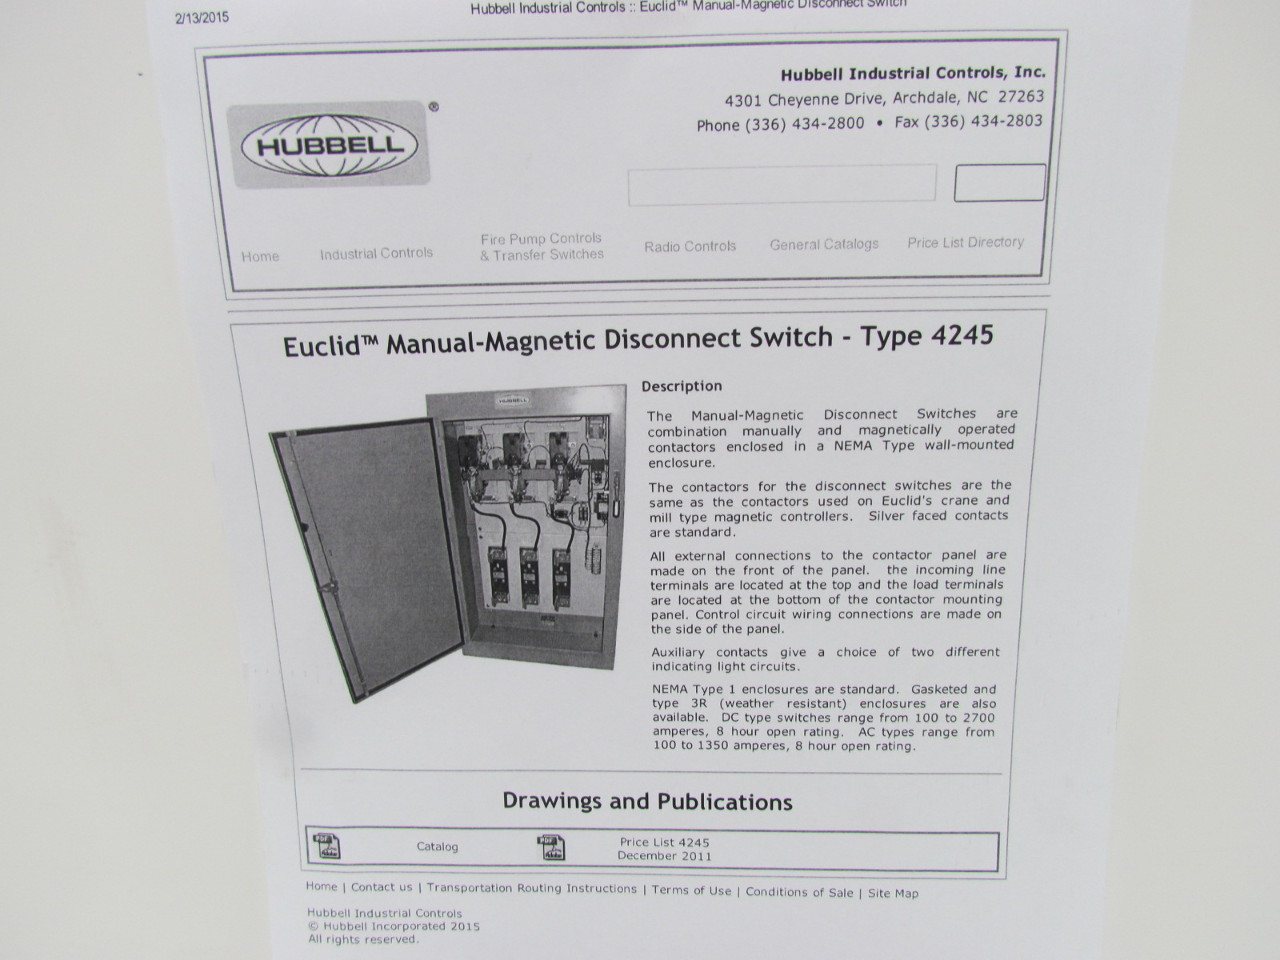 hubbell b 74971 001 euclid manual magnetic disconnect switch type hubbell b 74971 001 euclid manual magnetic disconnect switch type 4245 sz 5